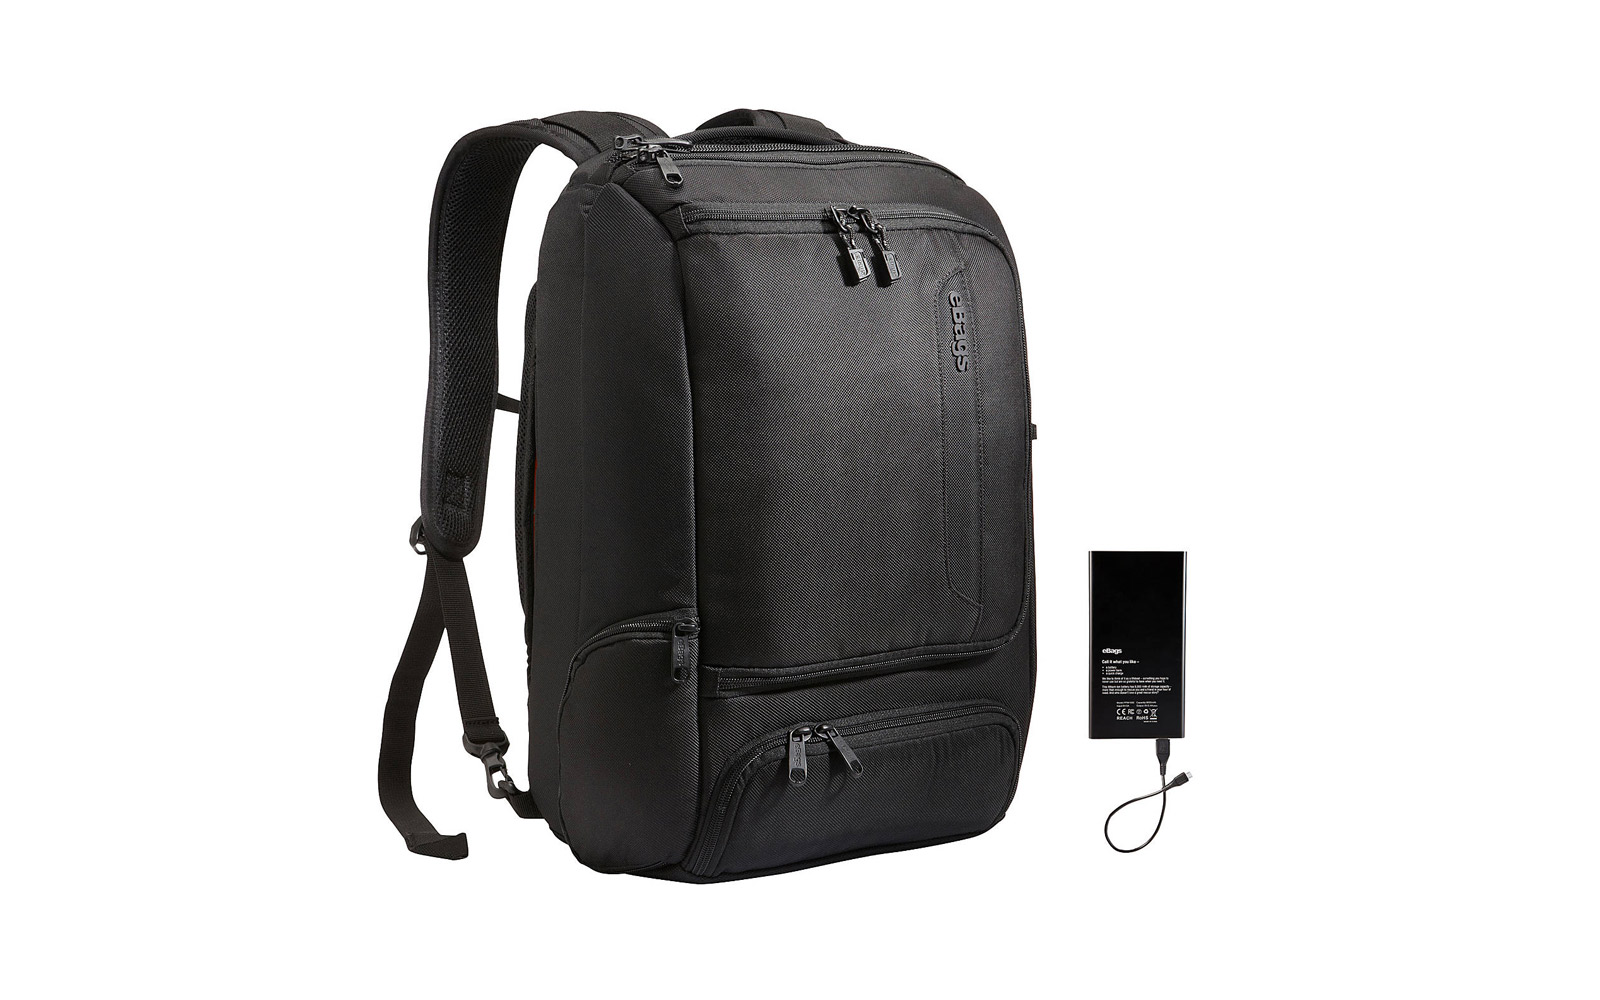 cb3fe7893 The Best Laptop Backpacks for Travel